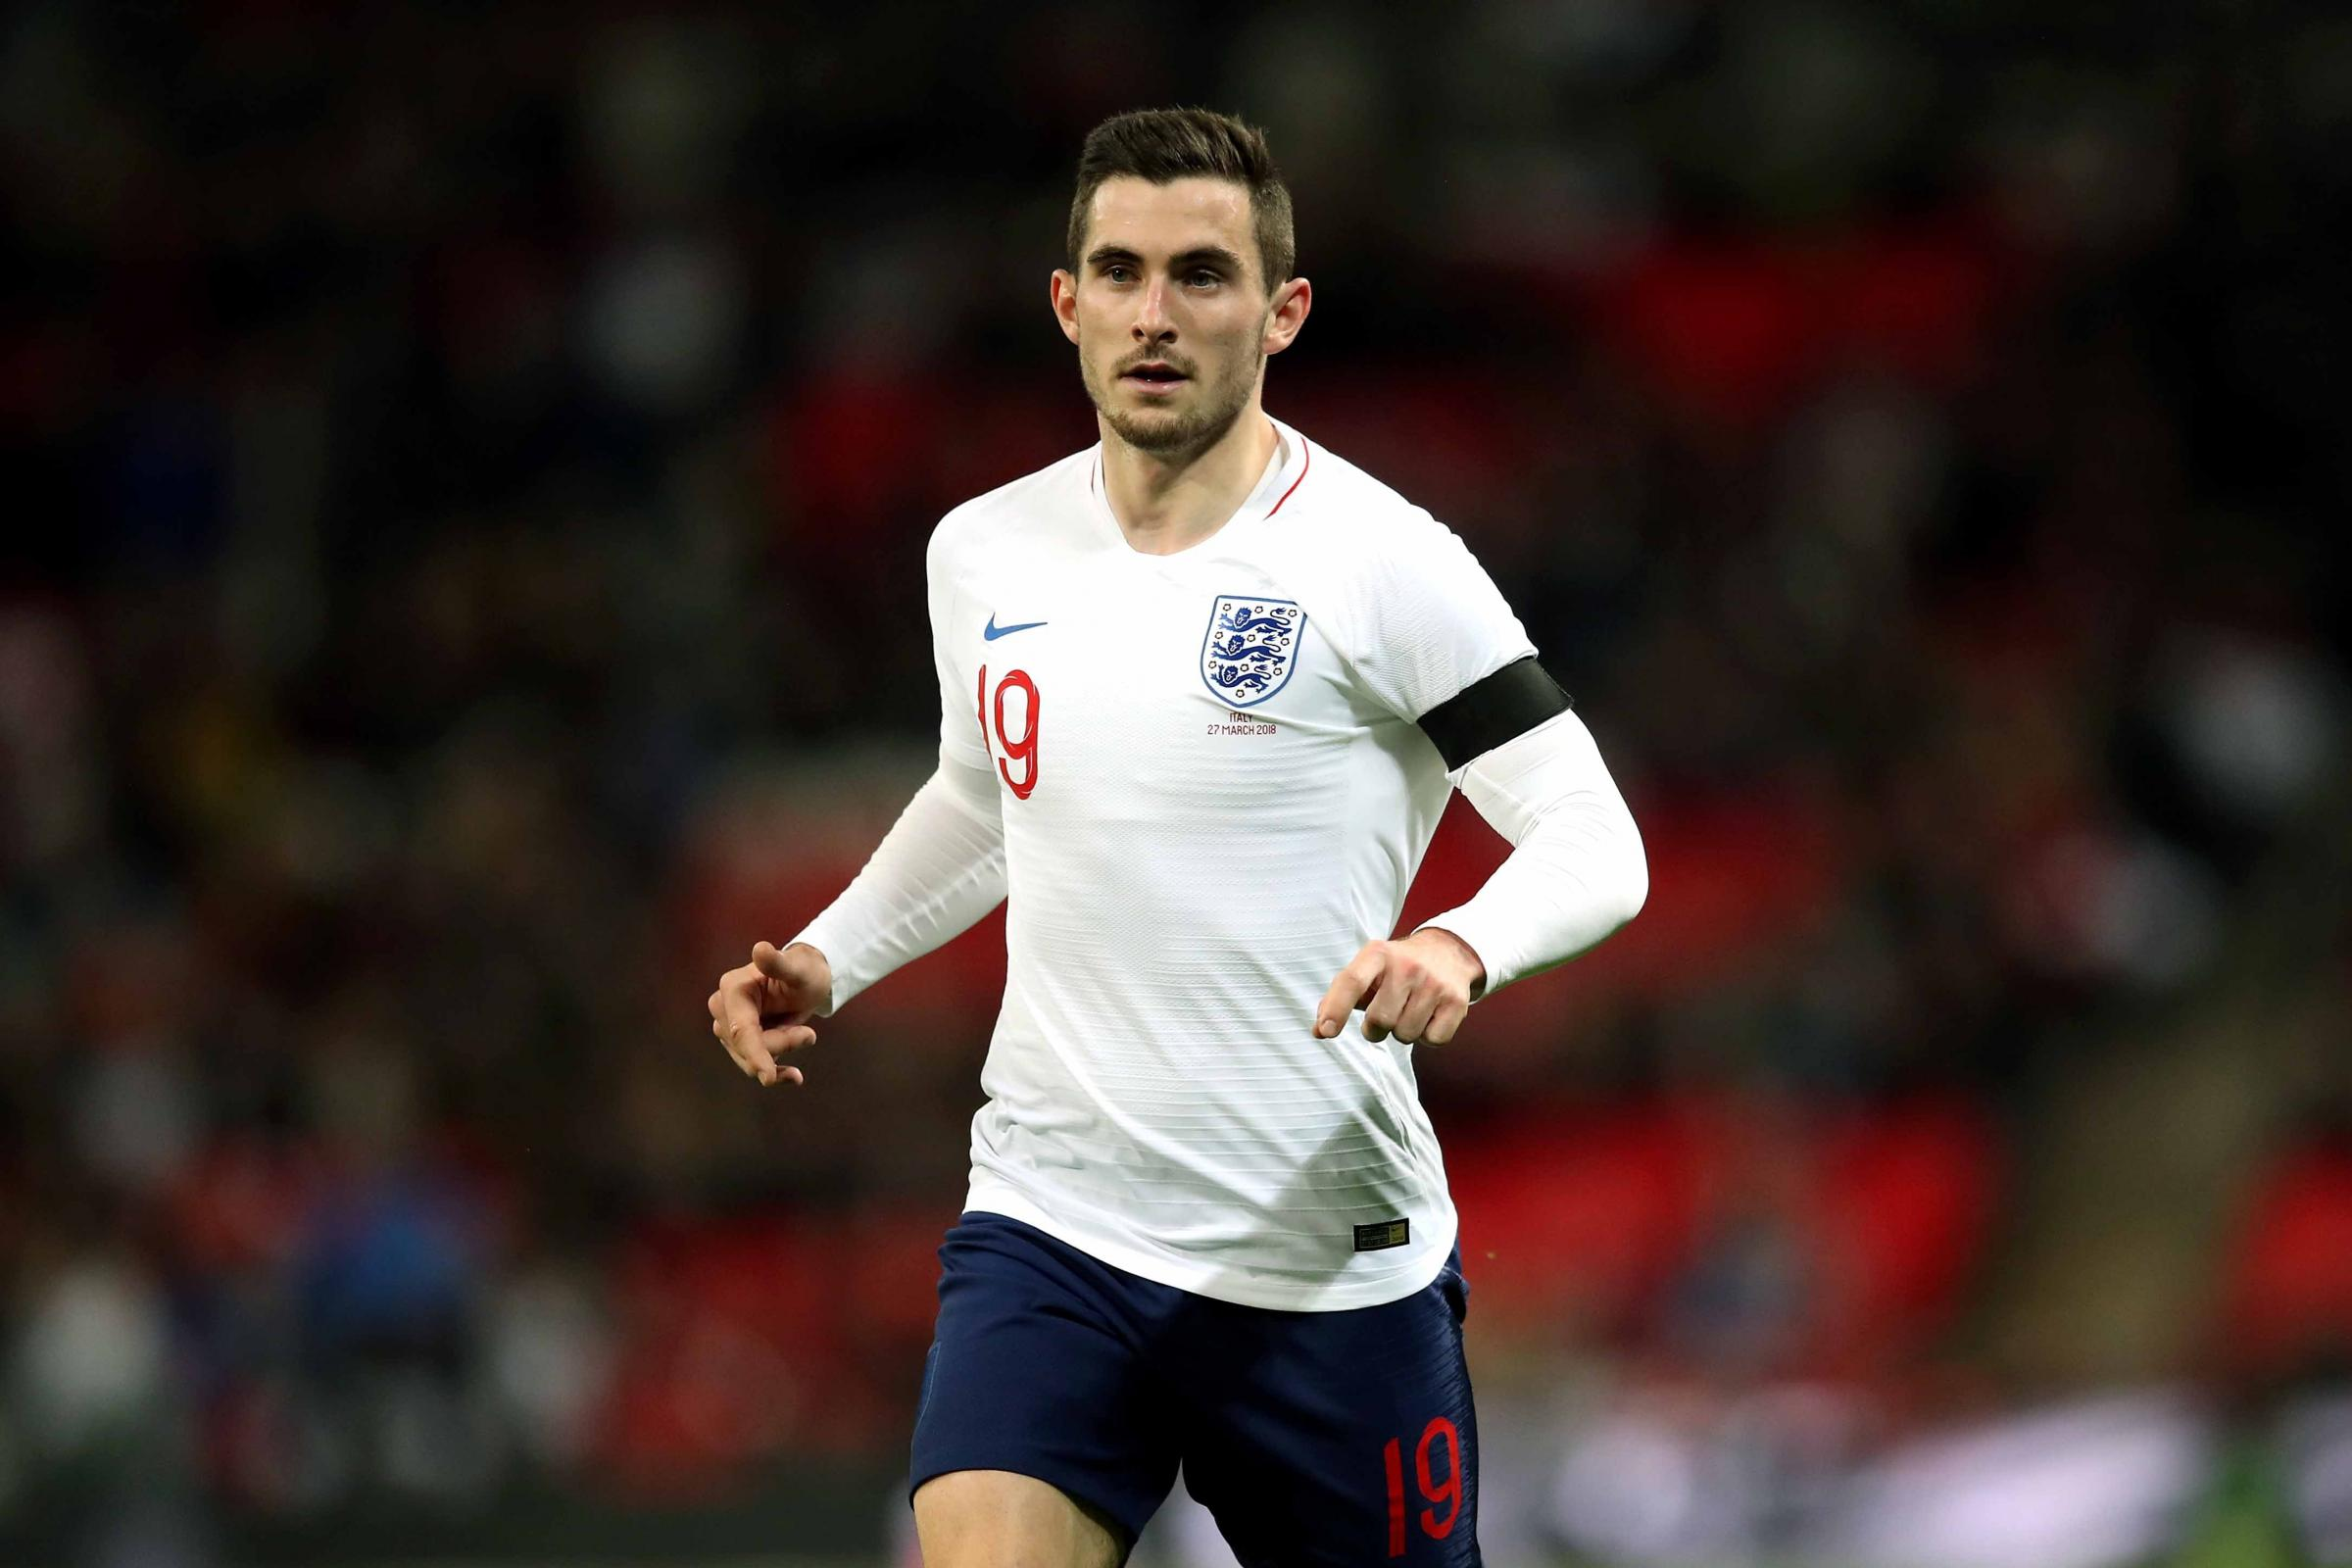 Bournemouth's England midfielder Lewis Cook has been ruled out of action for six to nine months